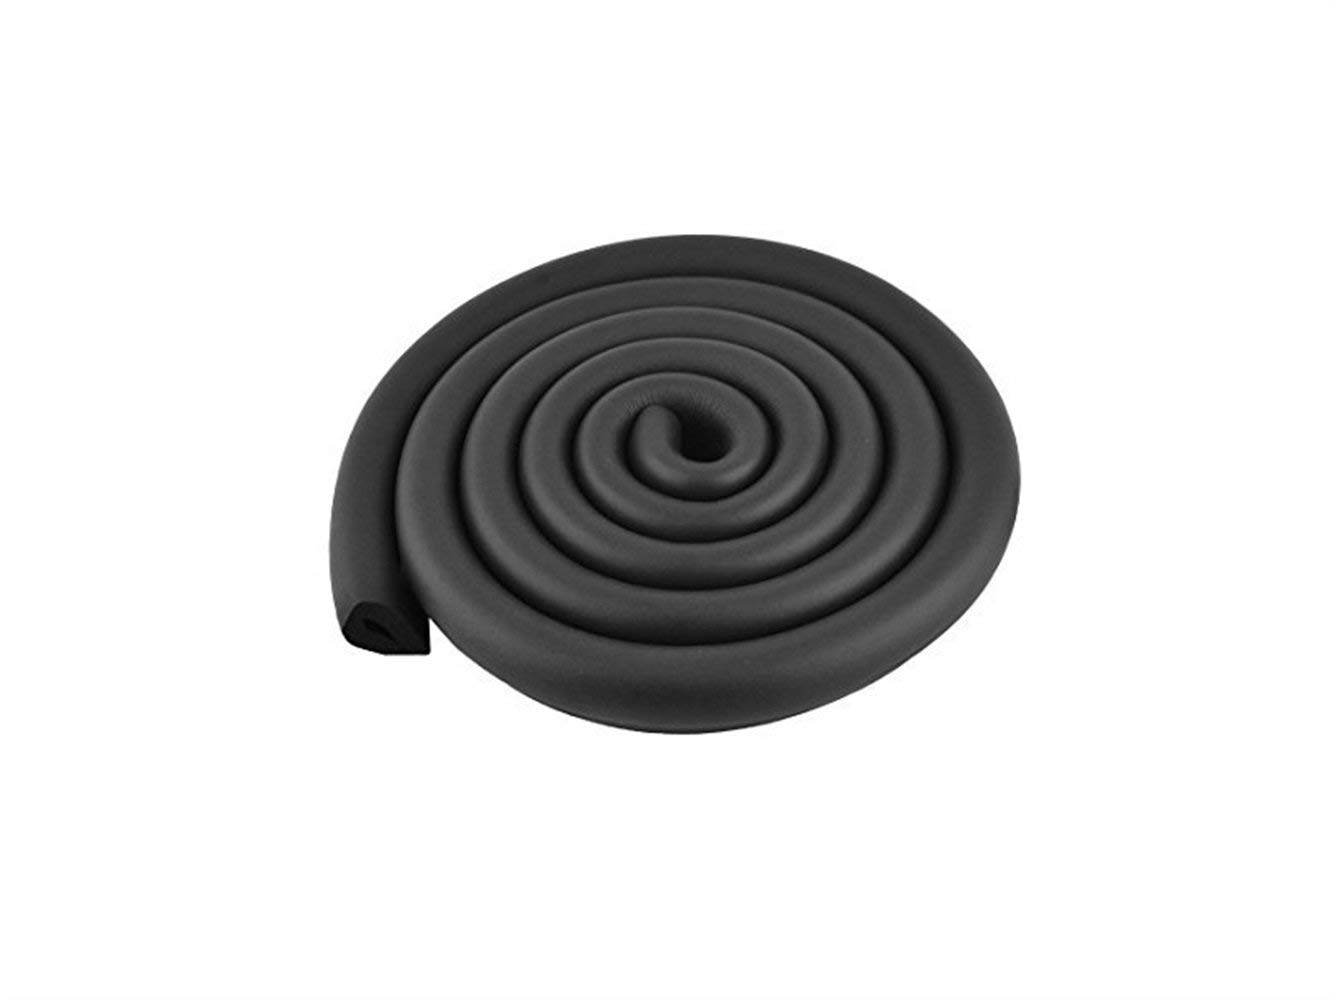 Yuchoi Perfectly Shaped Table Corner Edge Soft Safety Protection Cushion Guard (Black)